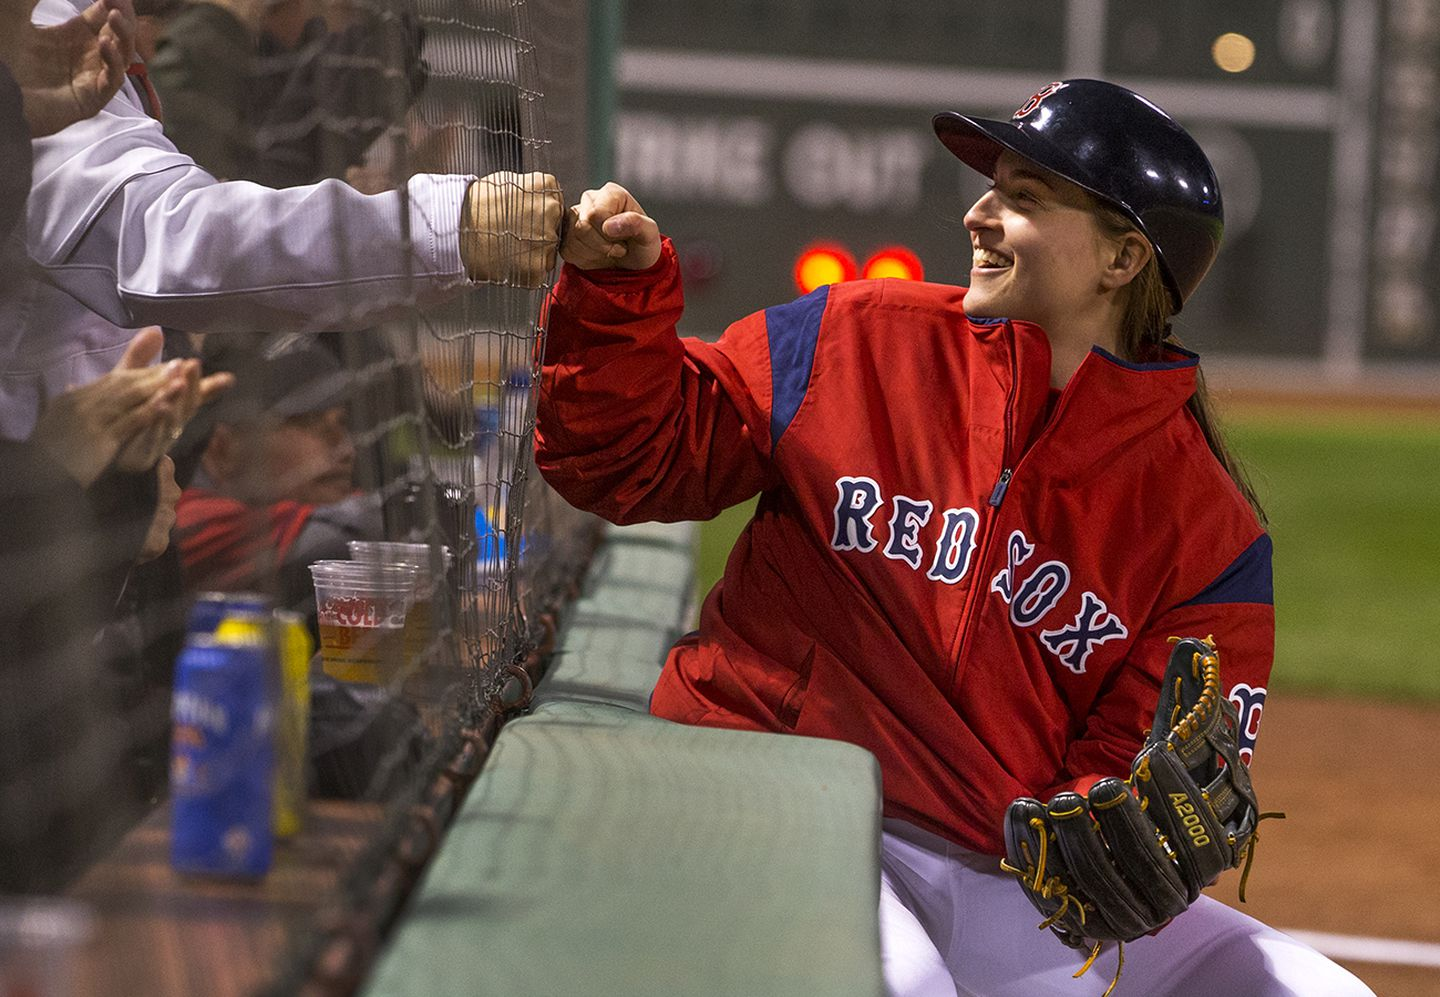 What Is A Hockey Player Doing On The Field During Red Sox Games At